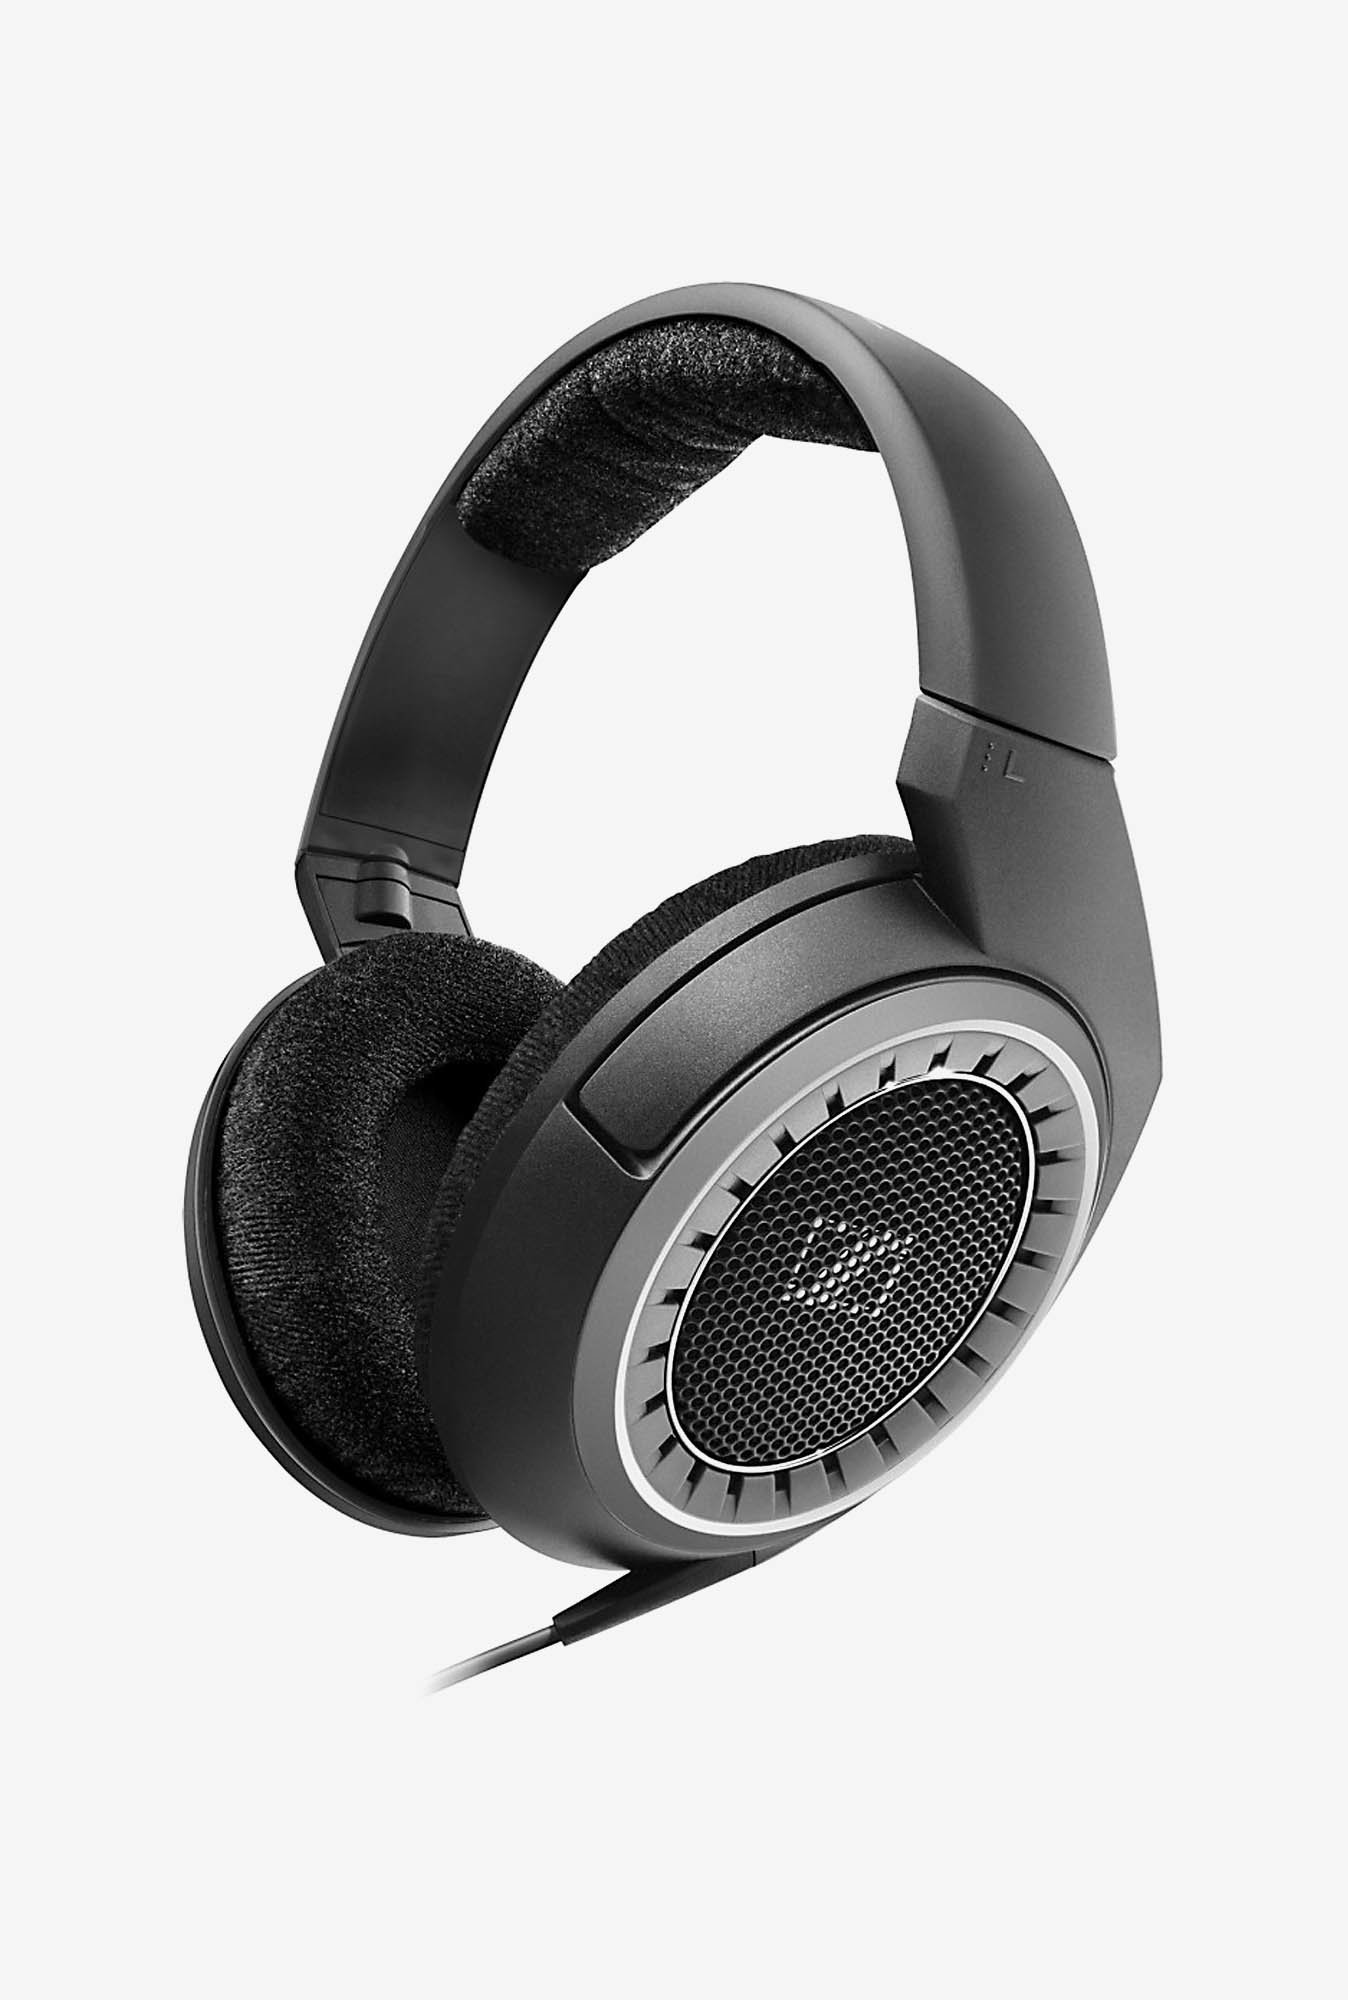 Sennheiser HD 439 Over the Ear Headphone (Black)